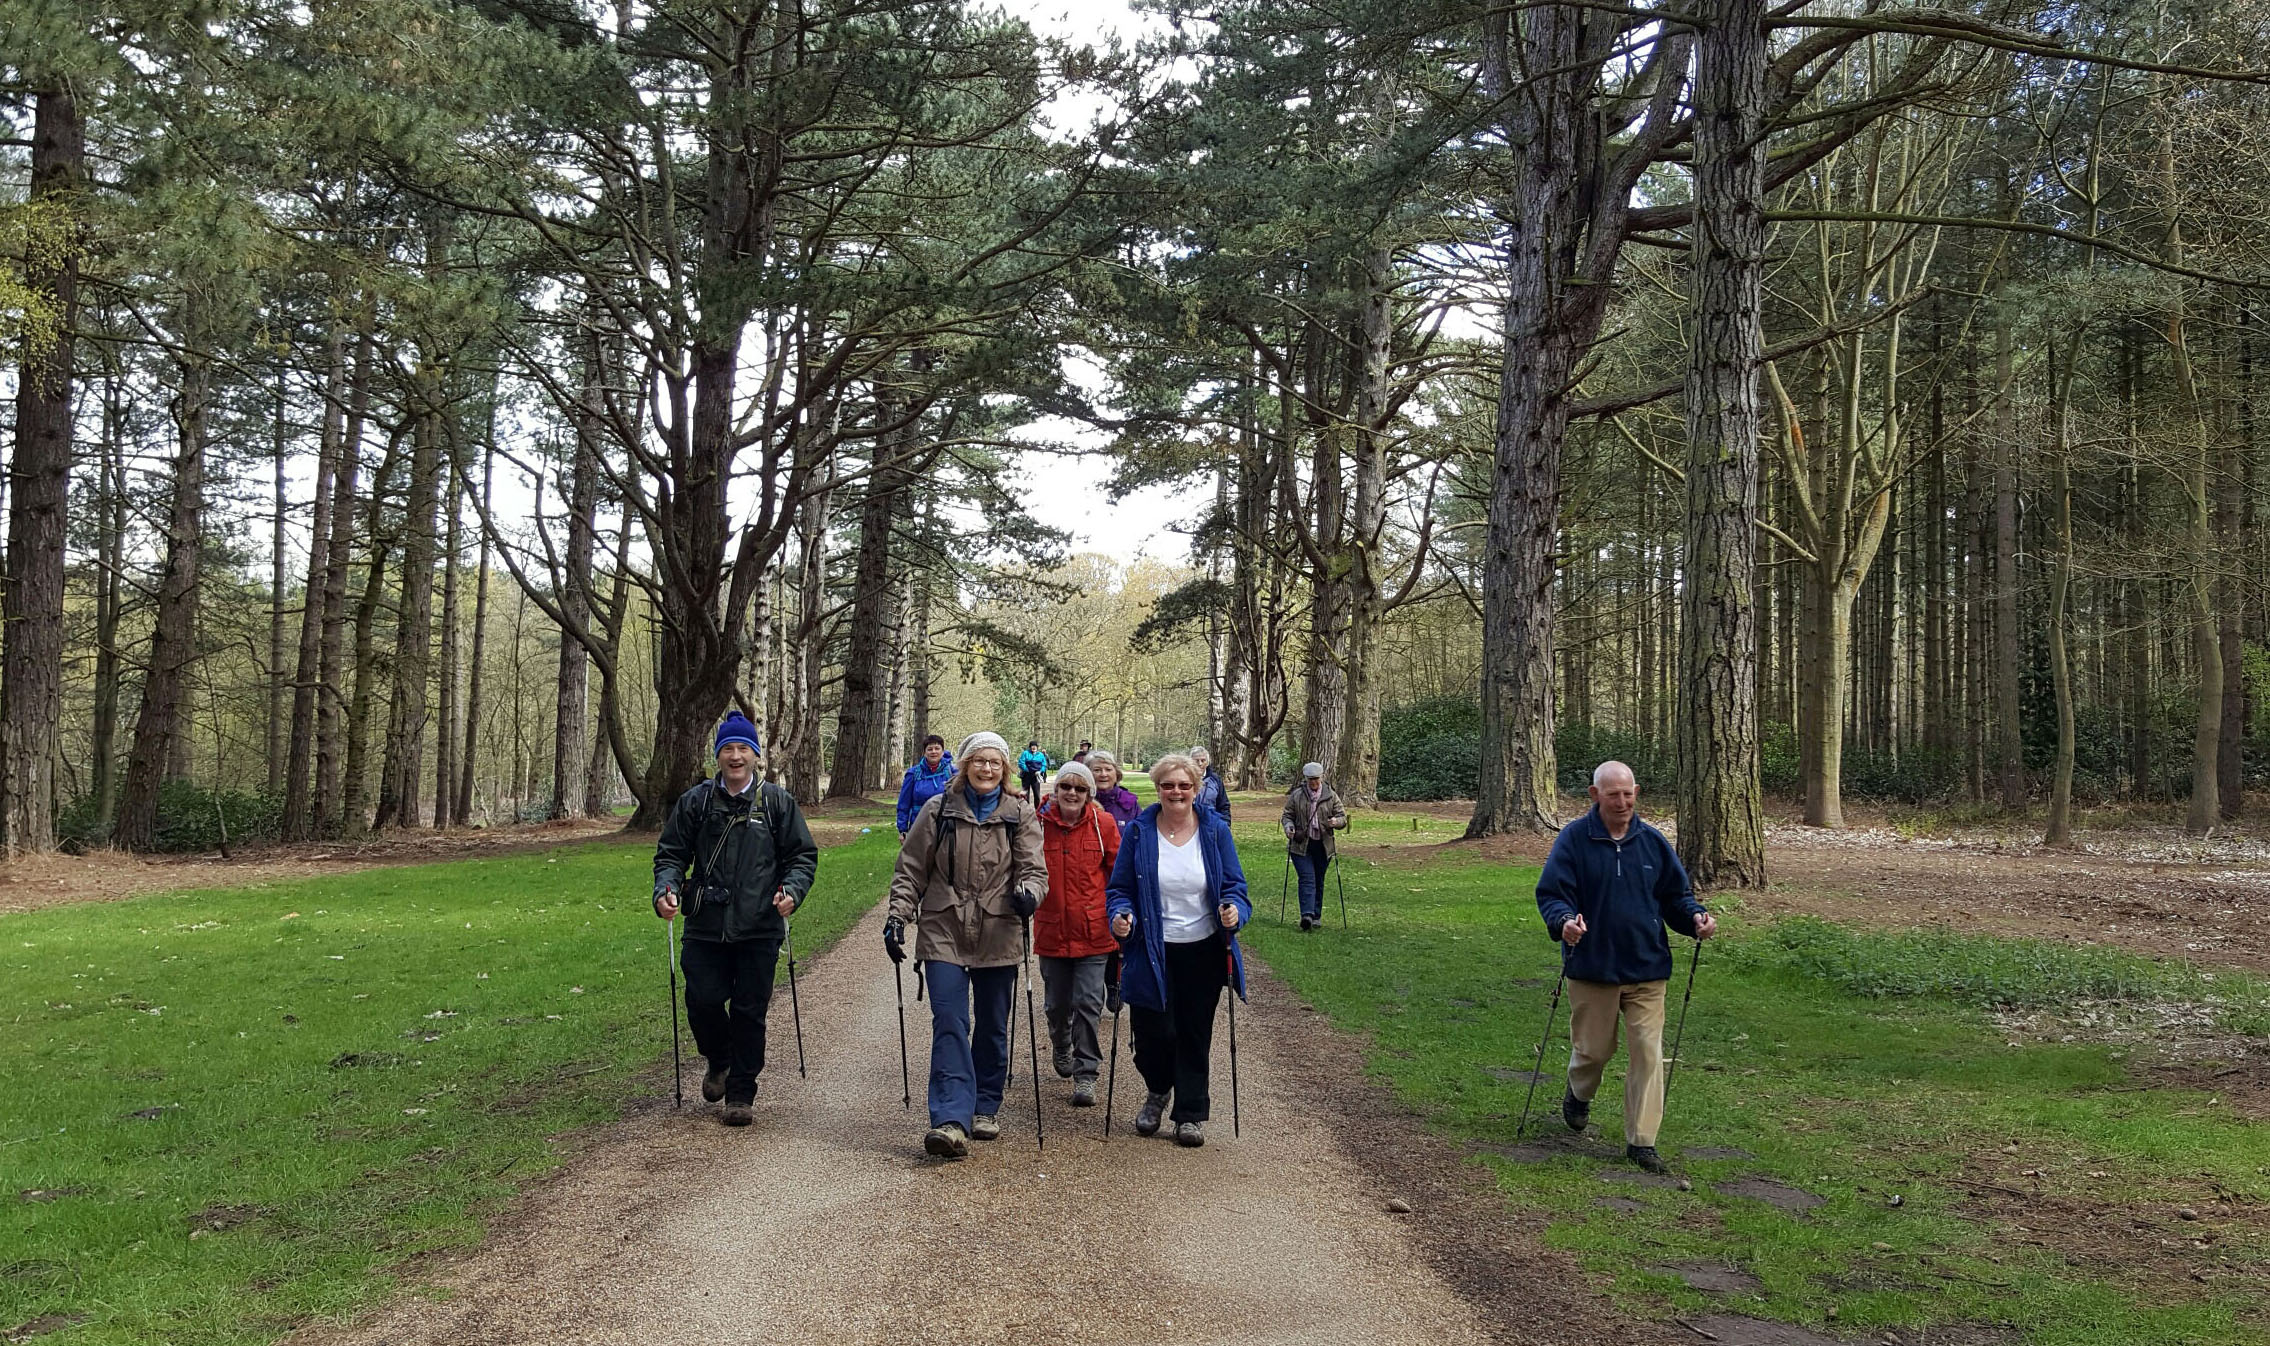 sandringham-estate-norfolk-april-16